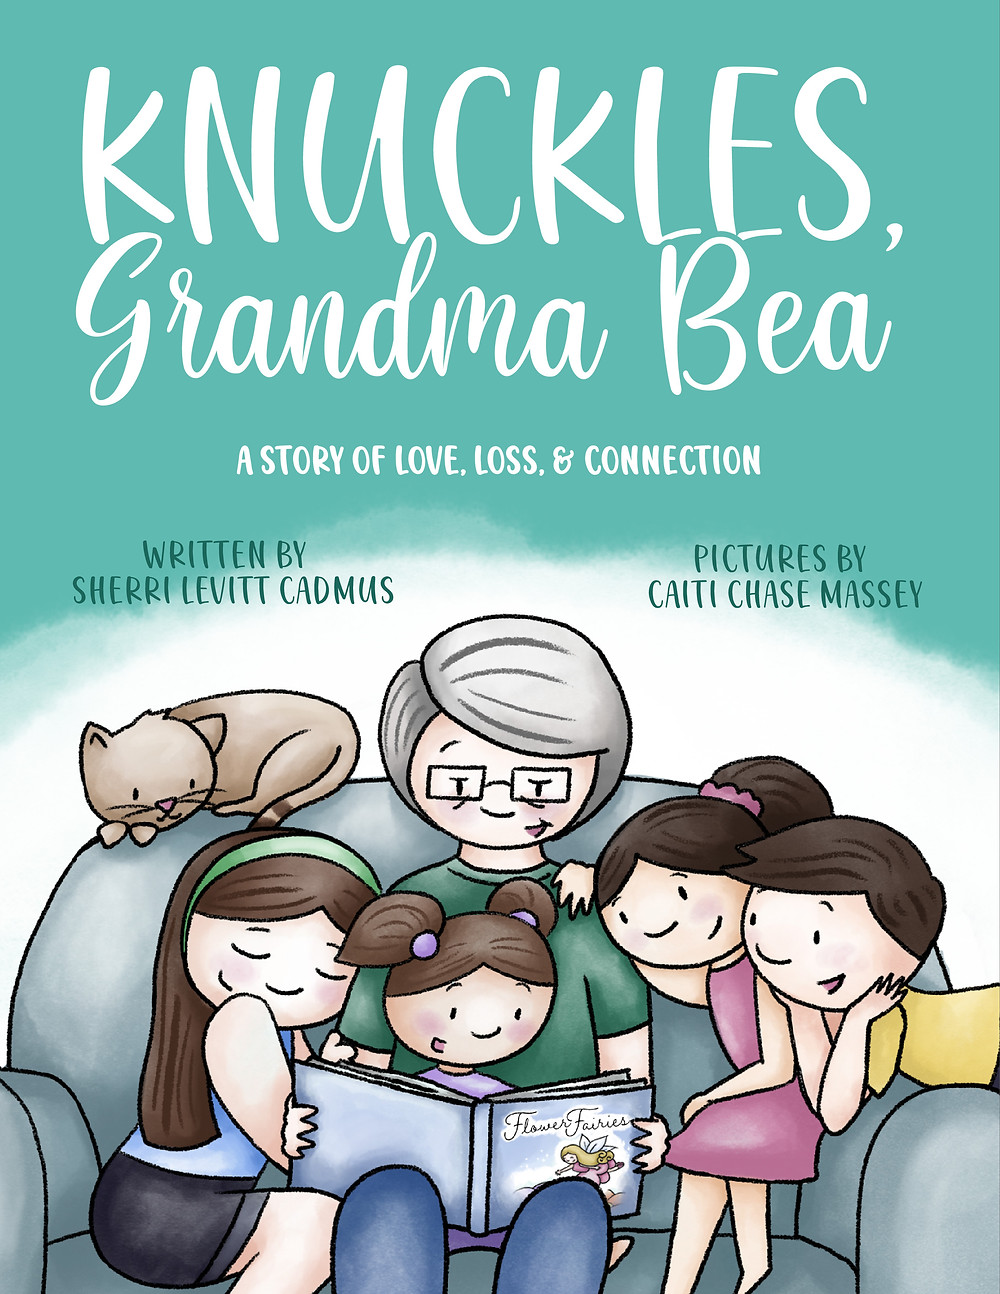 Cover image from the children's book Knuckles, Grandma Bea